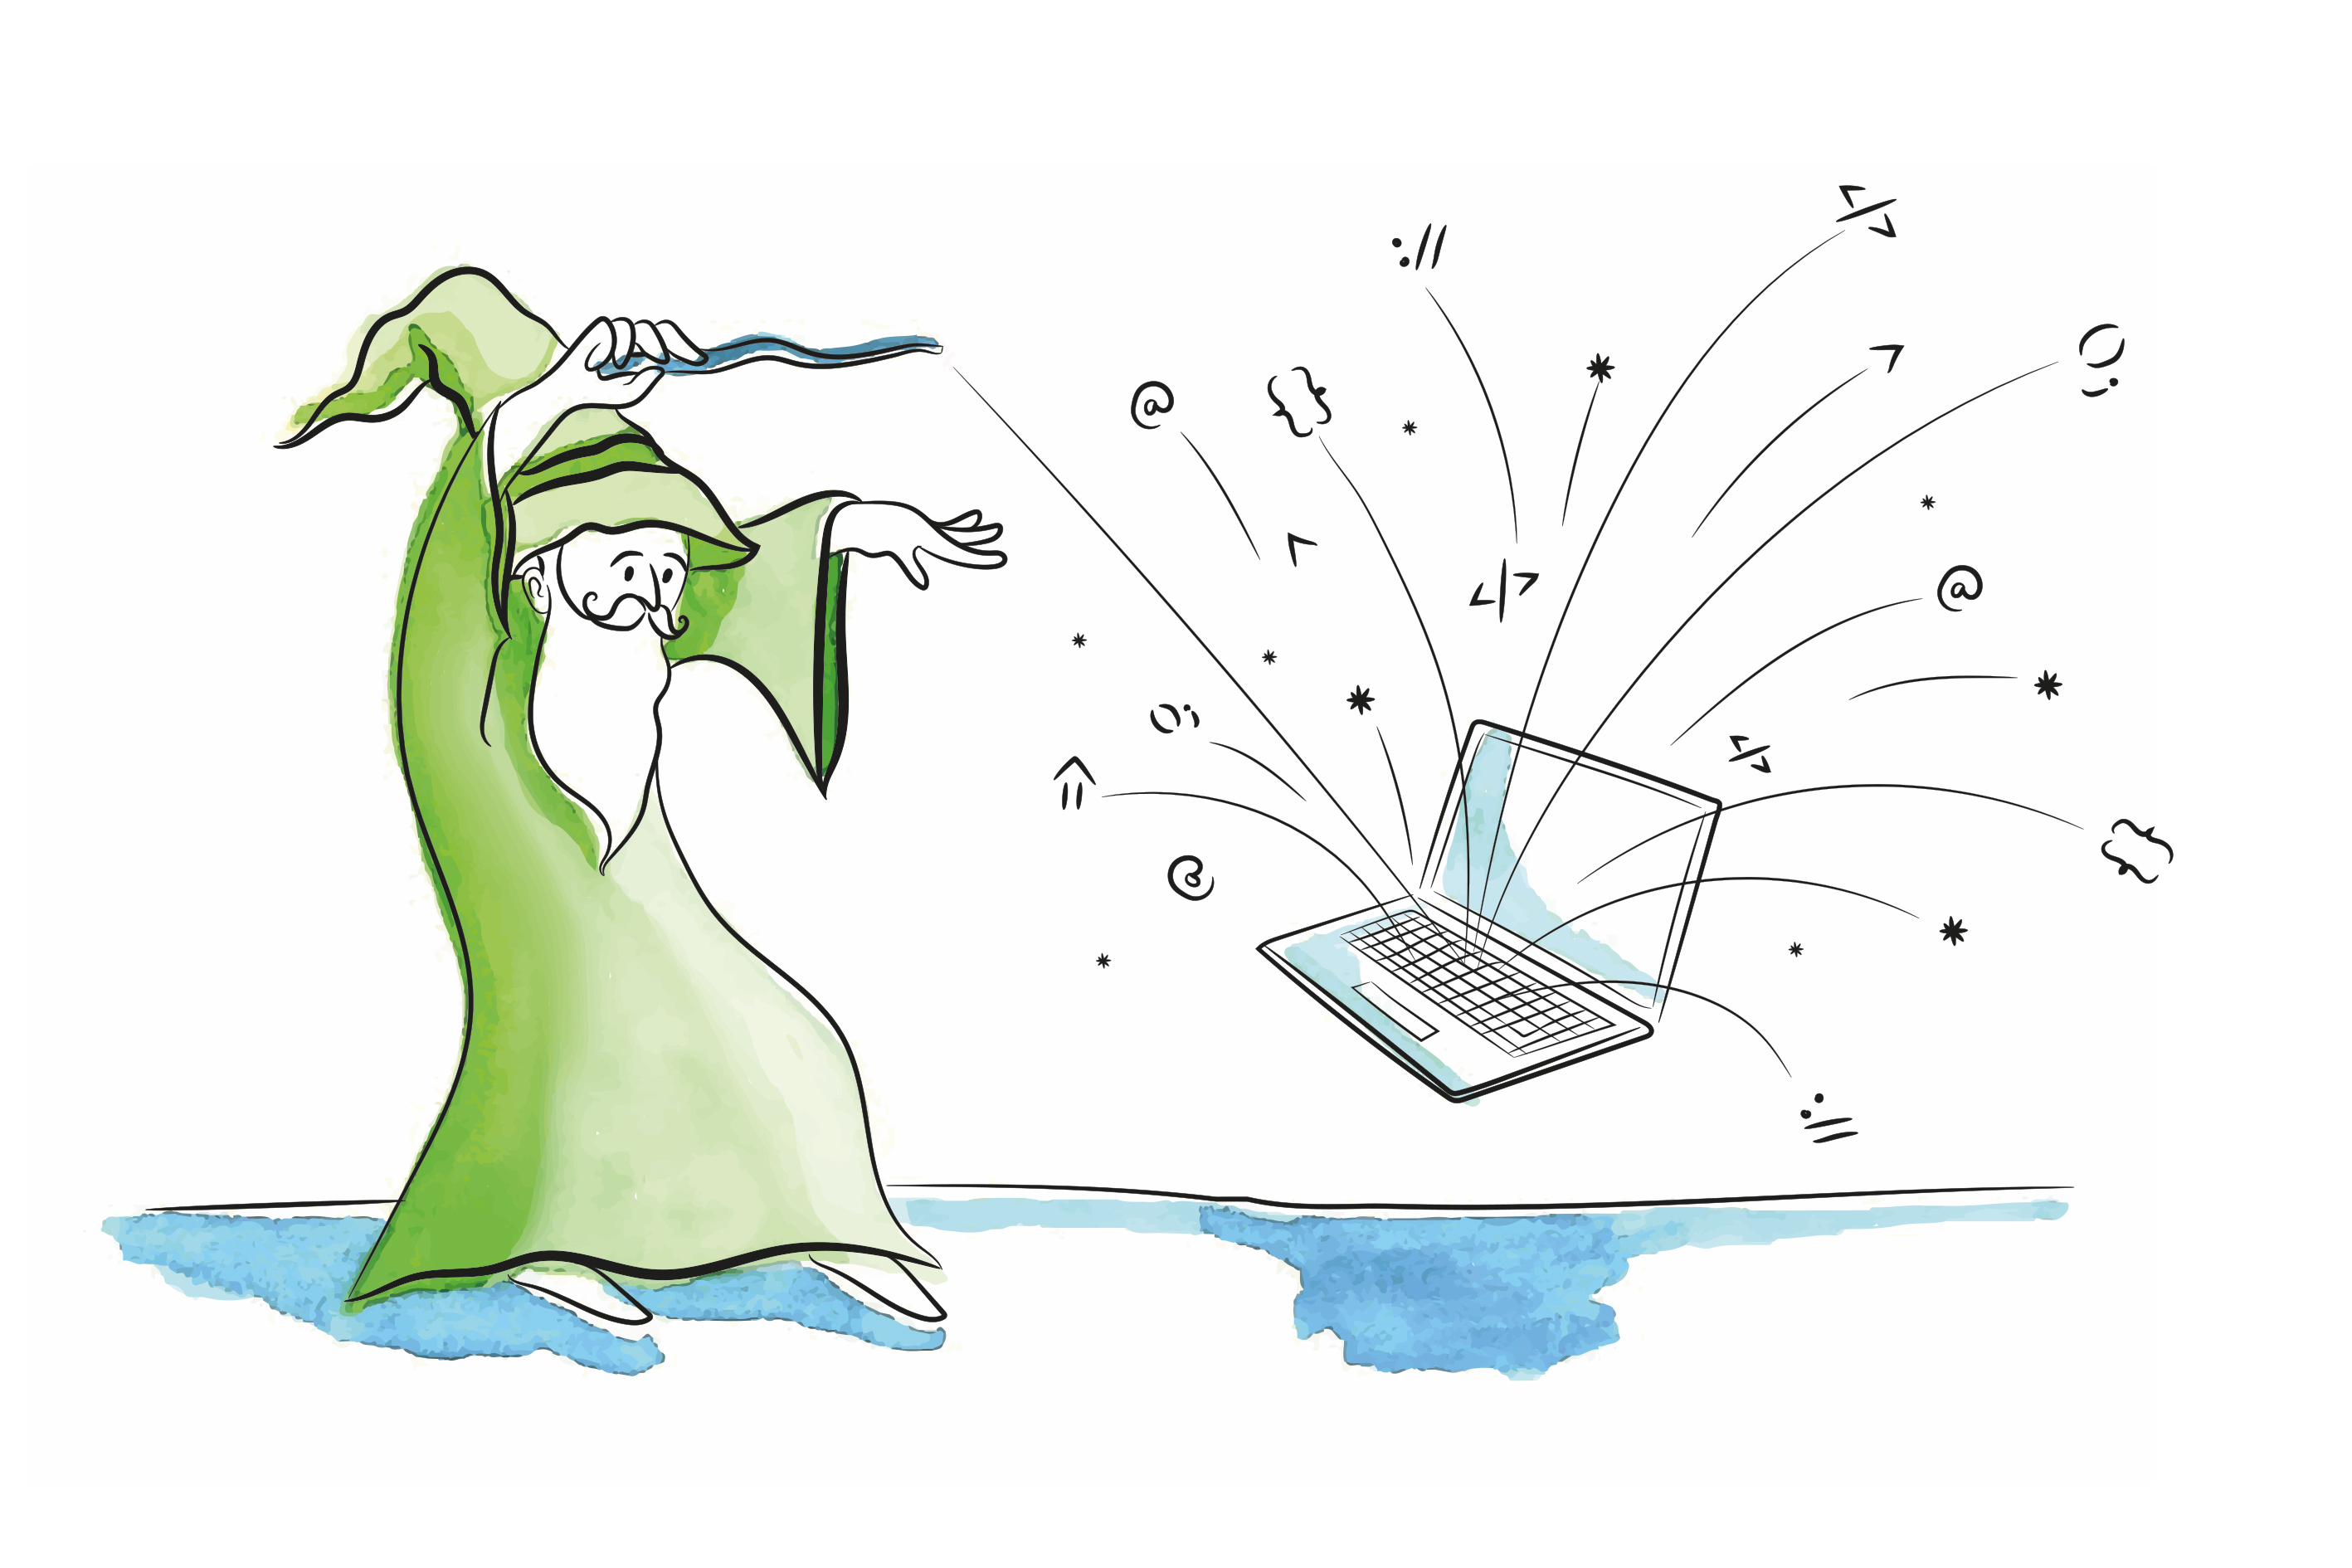 a wizard casting a magic spell on a floating laptop